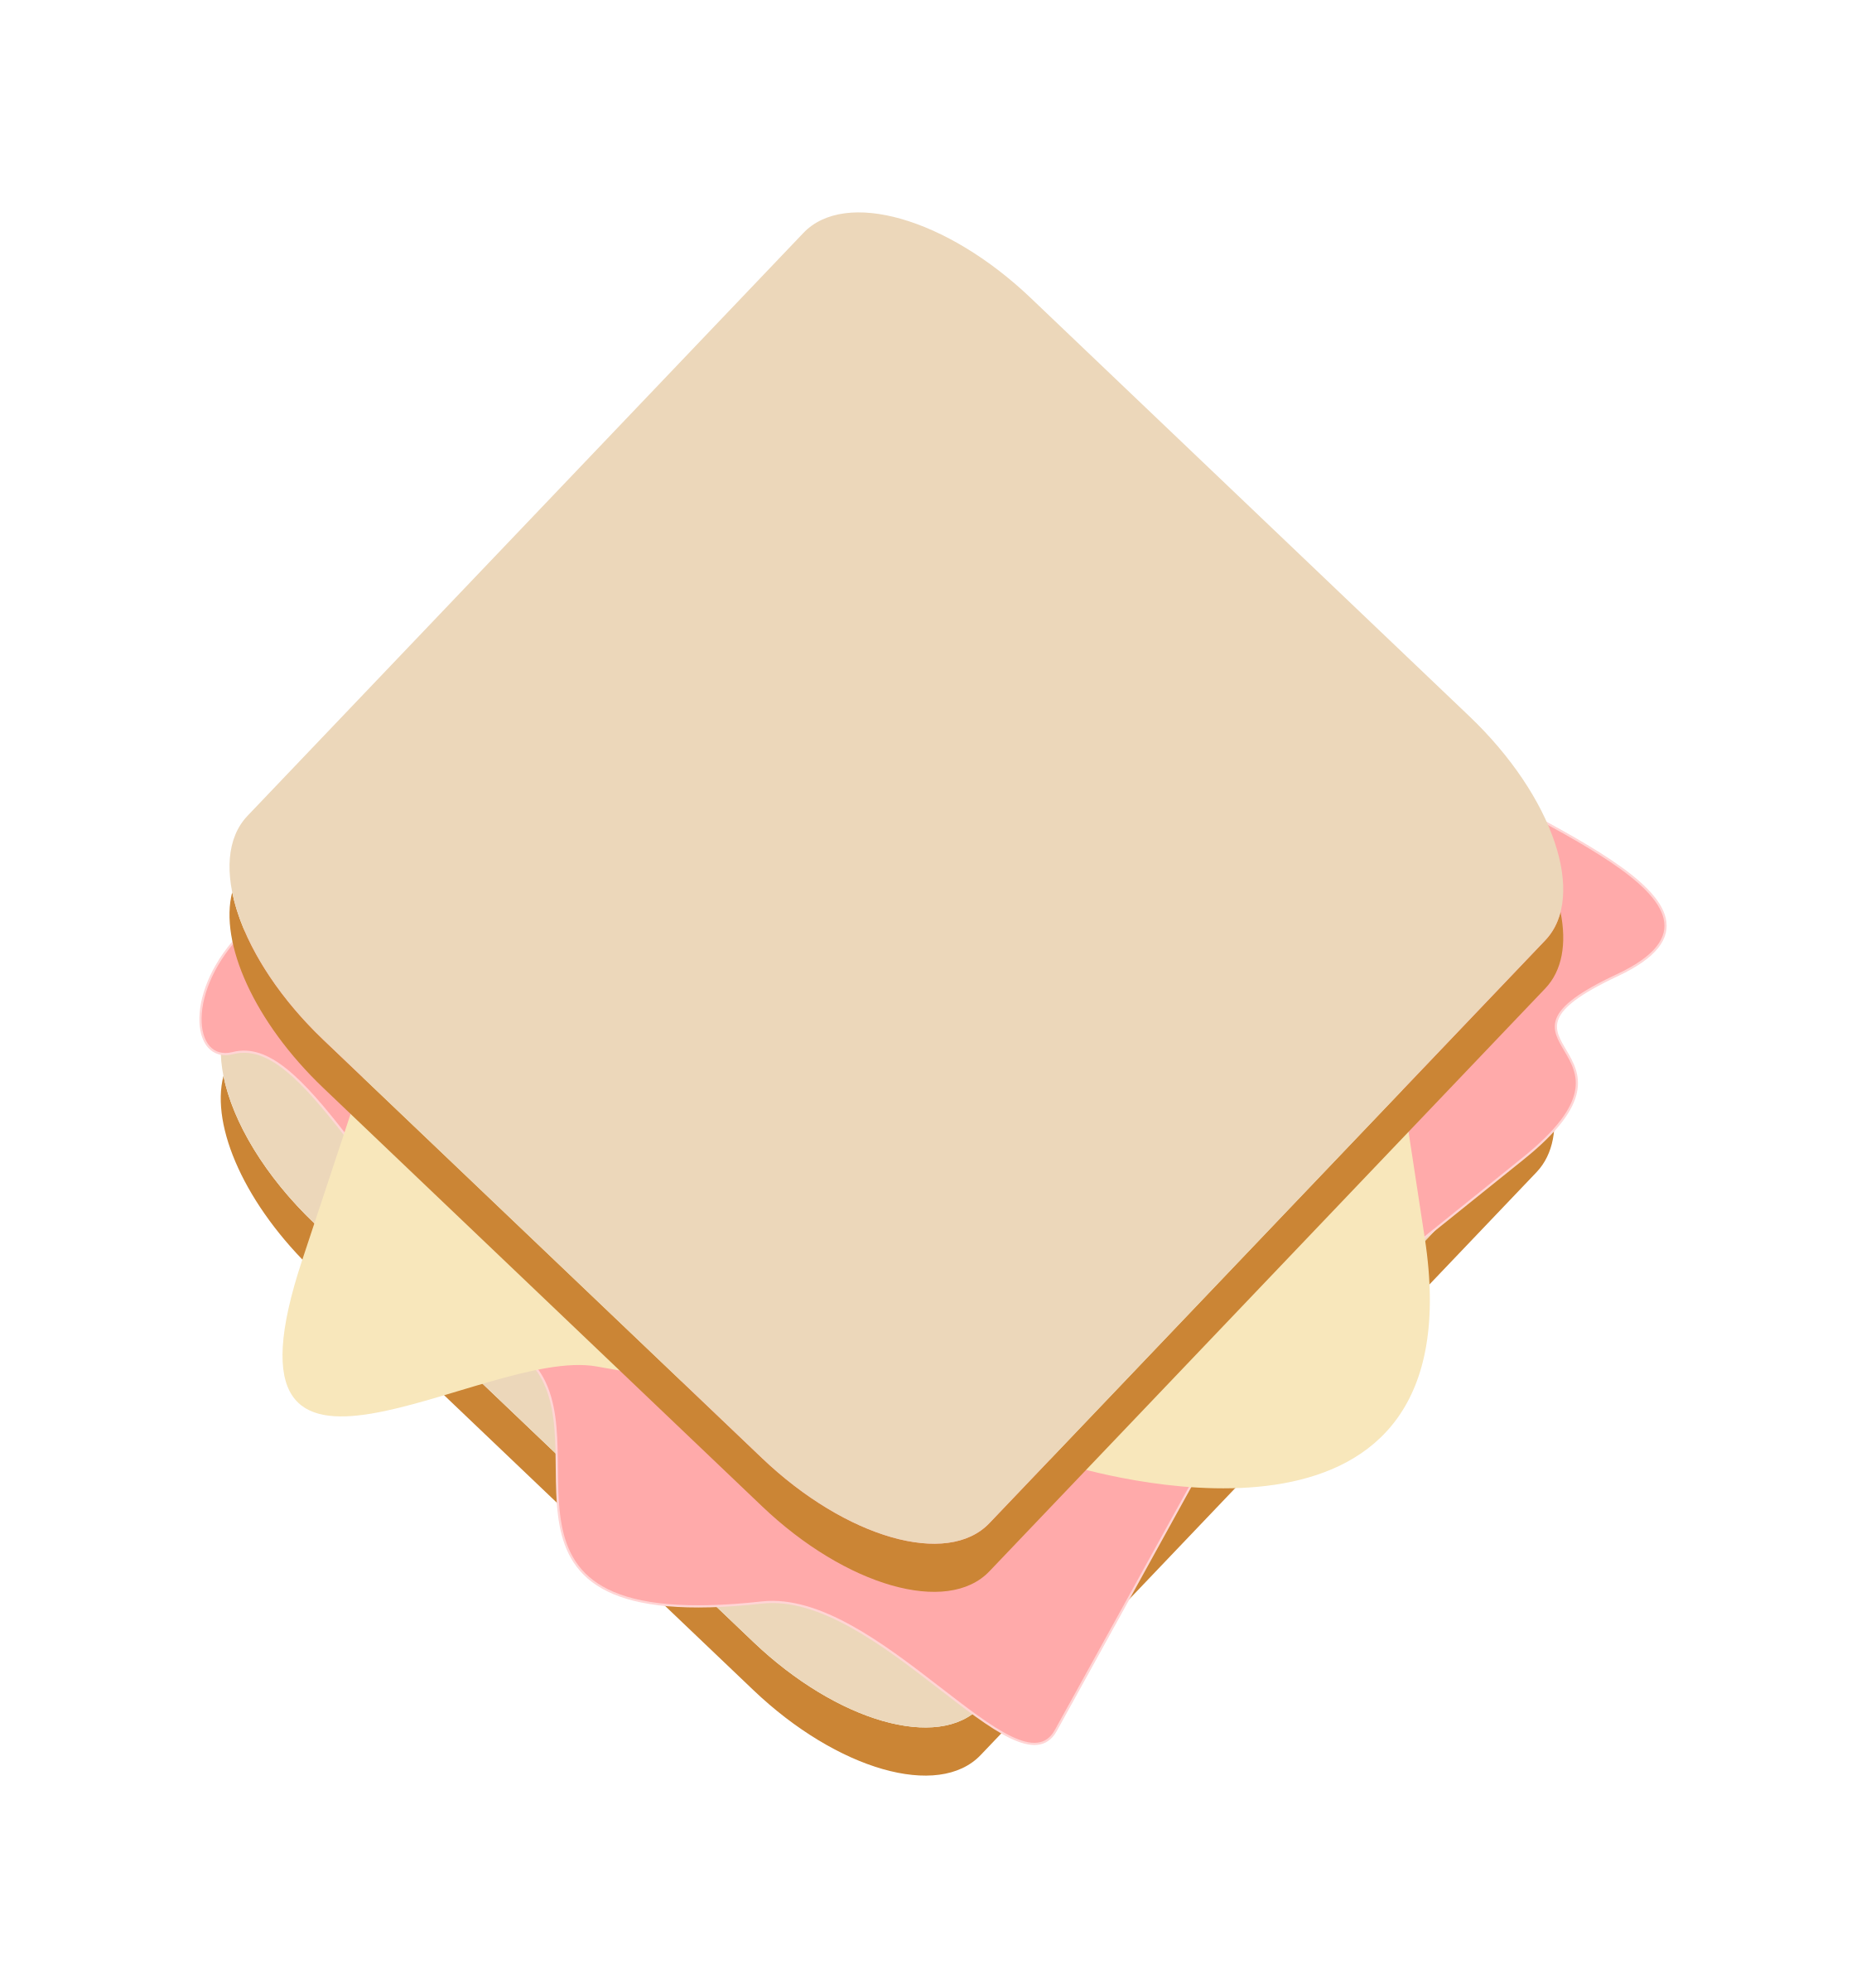 Ham clipart ham cheese. Toast big image png